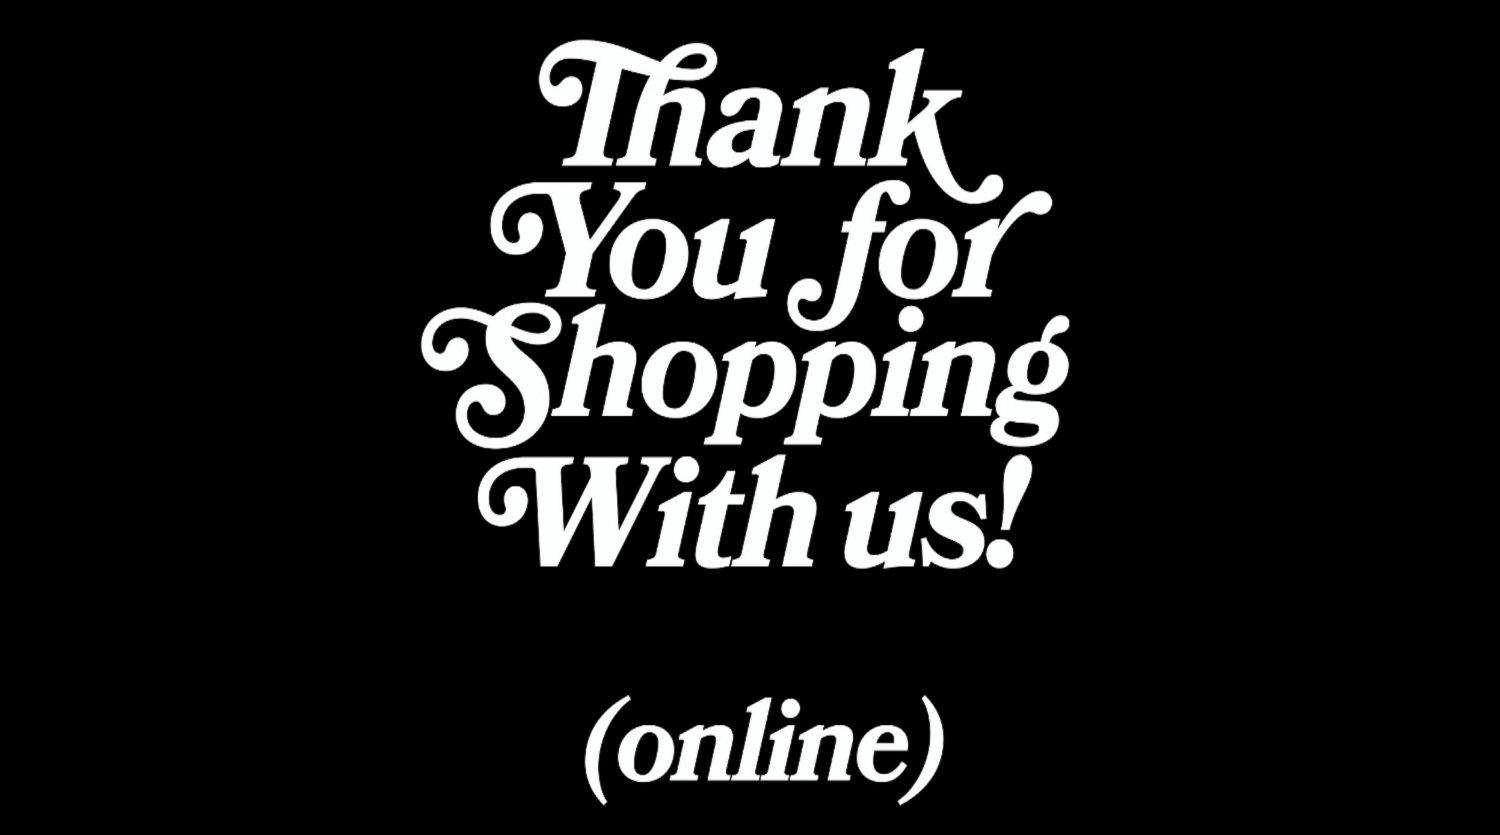 White typography on a black background that reads thank you for shopping with us online